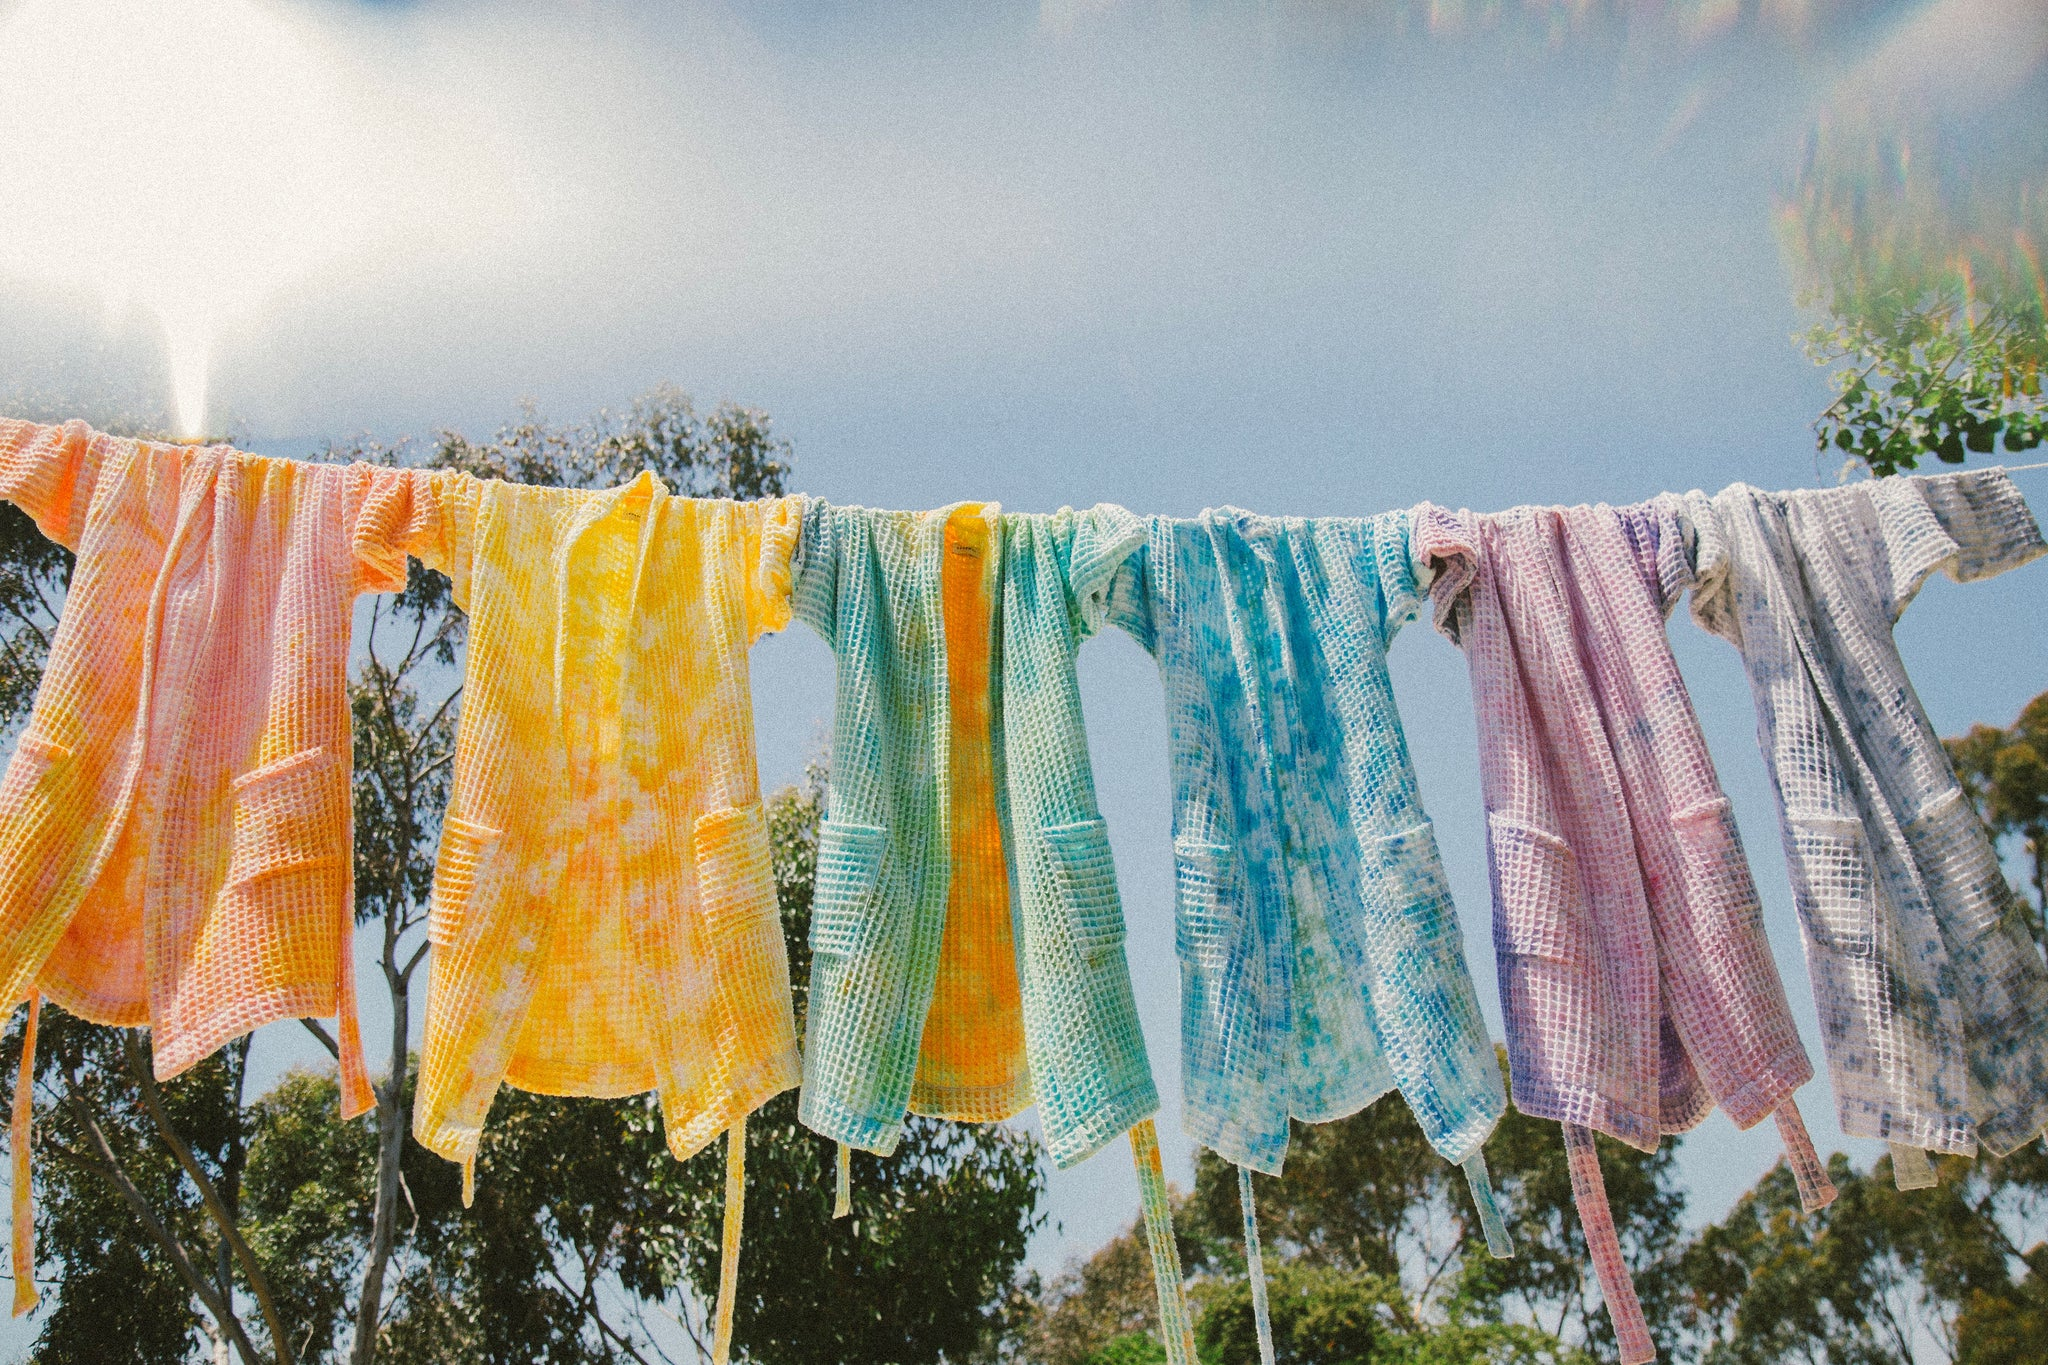 robes hanging on a clothesline